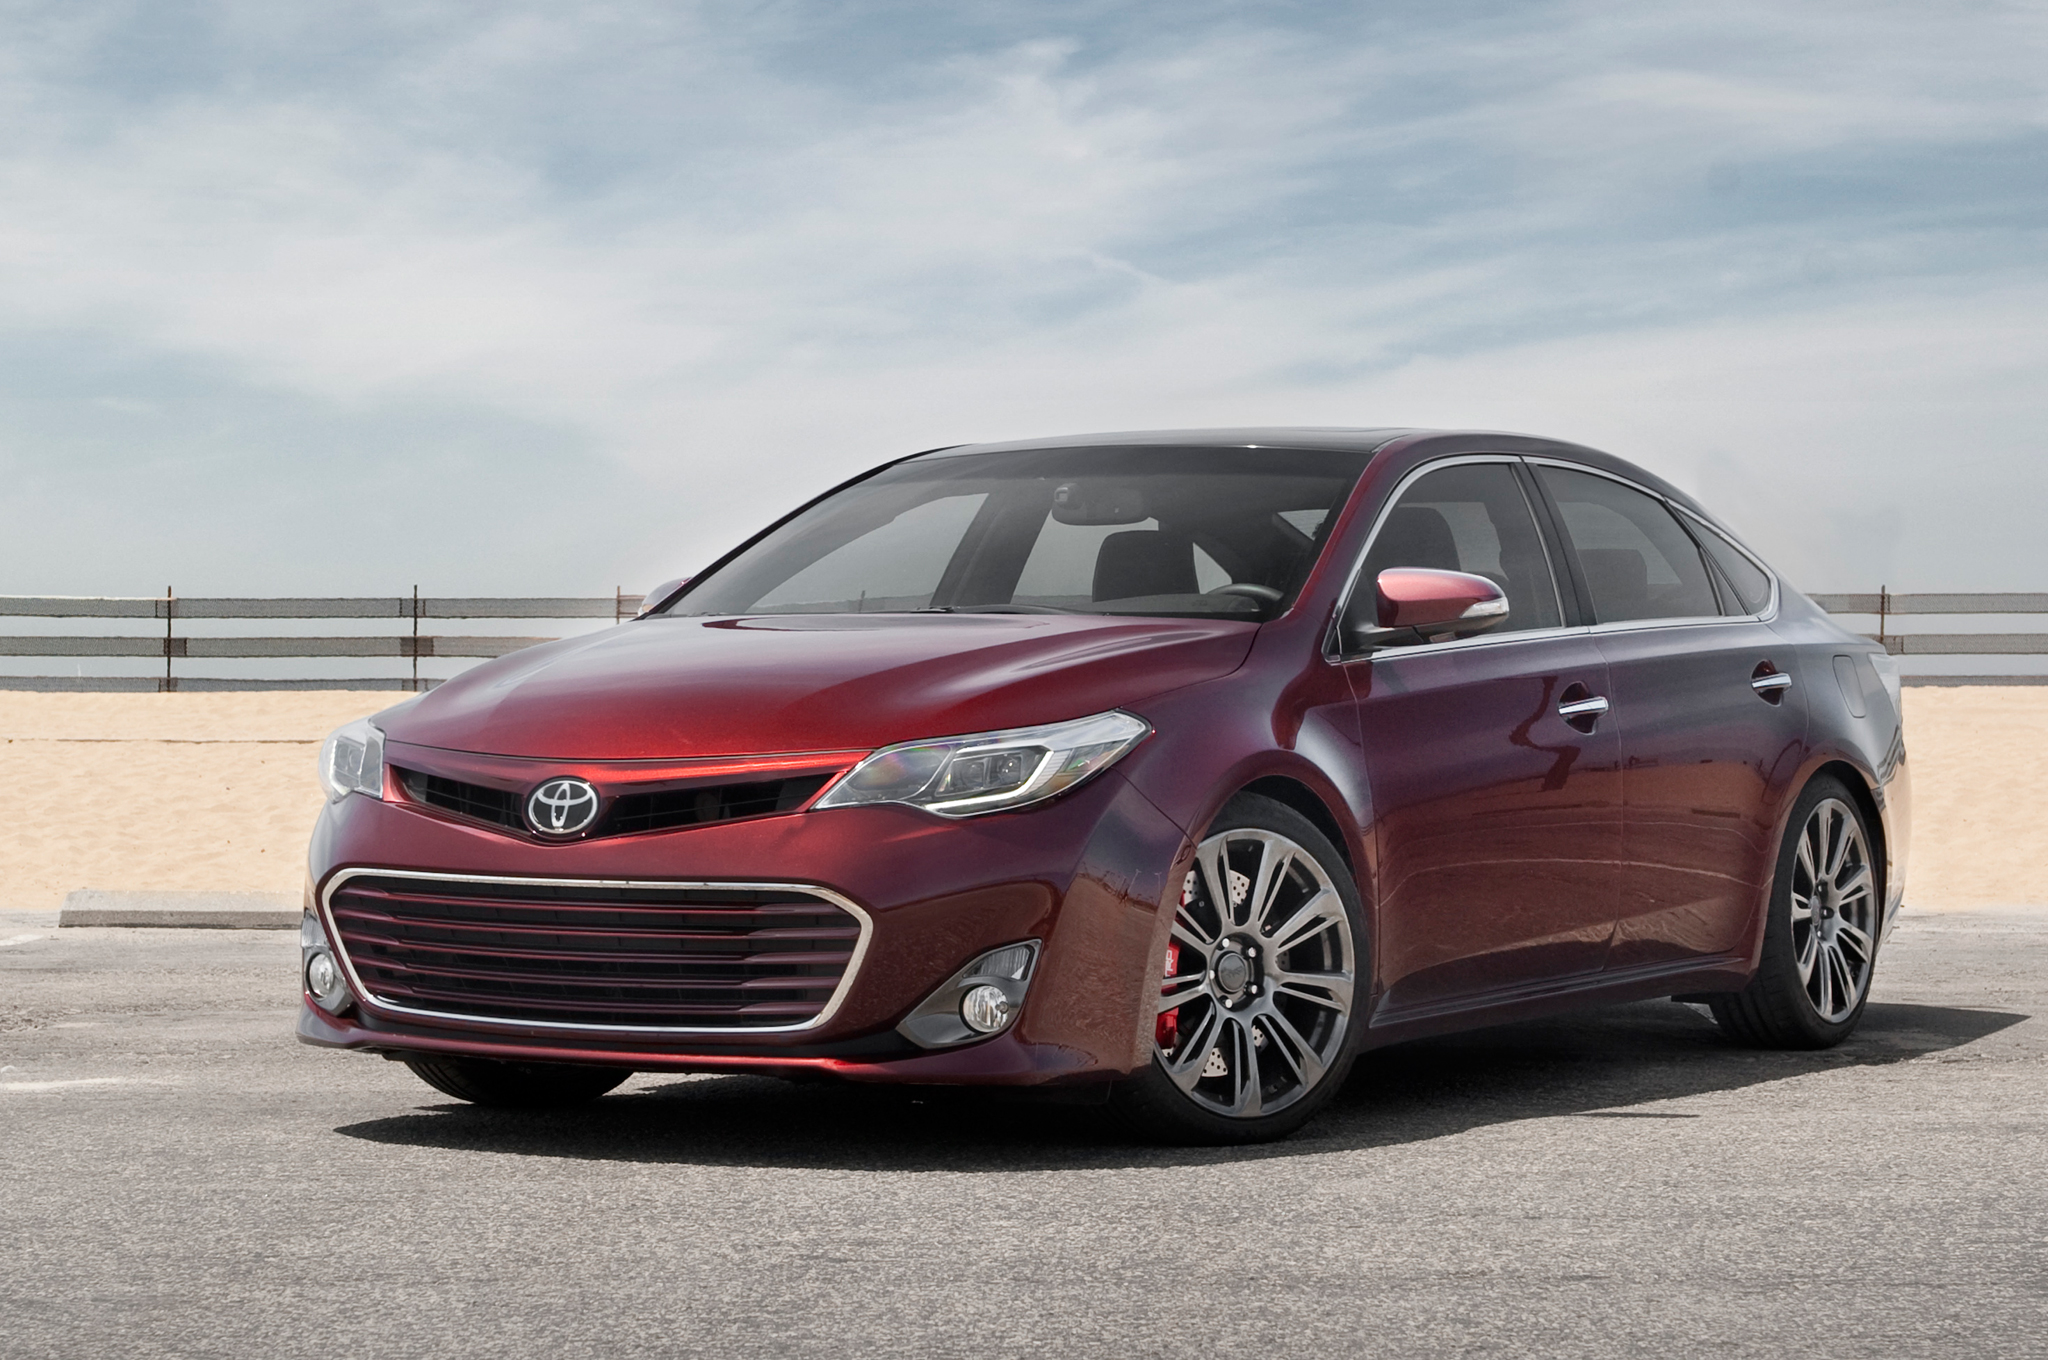 2015 Toyota Avalon For Sale >> 2013 Toyota Avalon Trd Edition First Test Motortrend